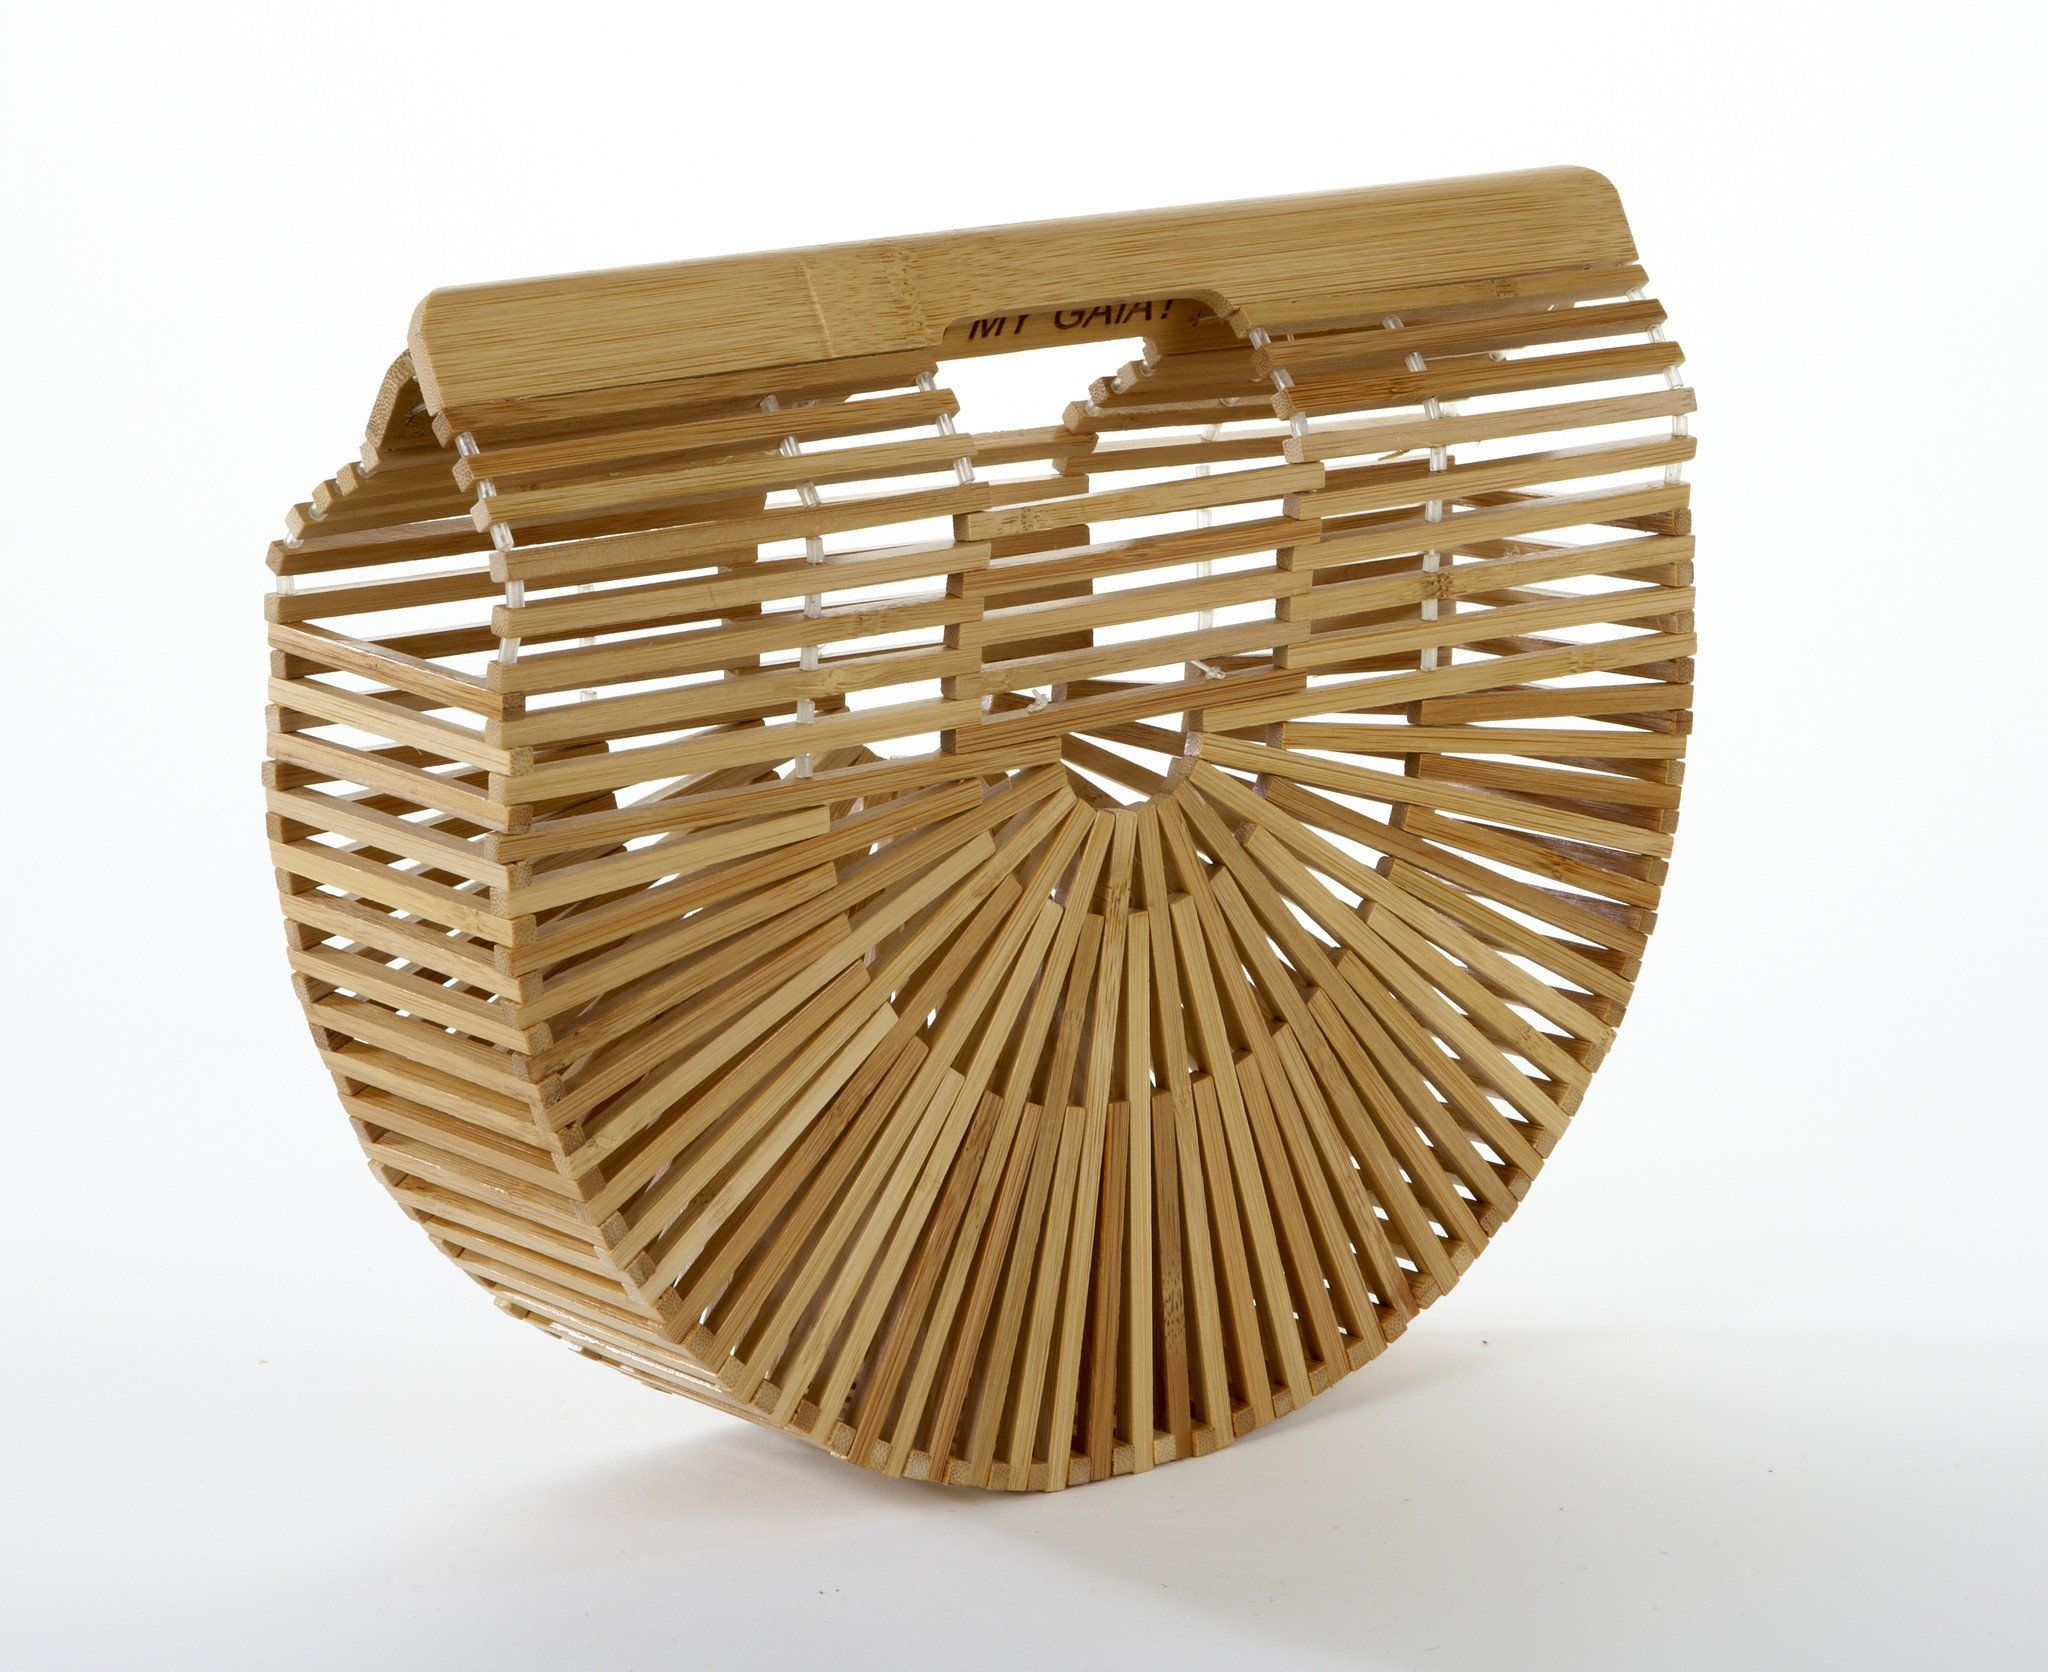 This Cult Gaia Bamboo Handbag Is A Reproduction Of A Classic